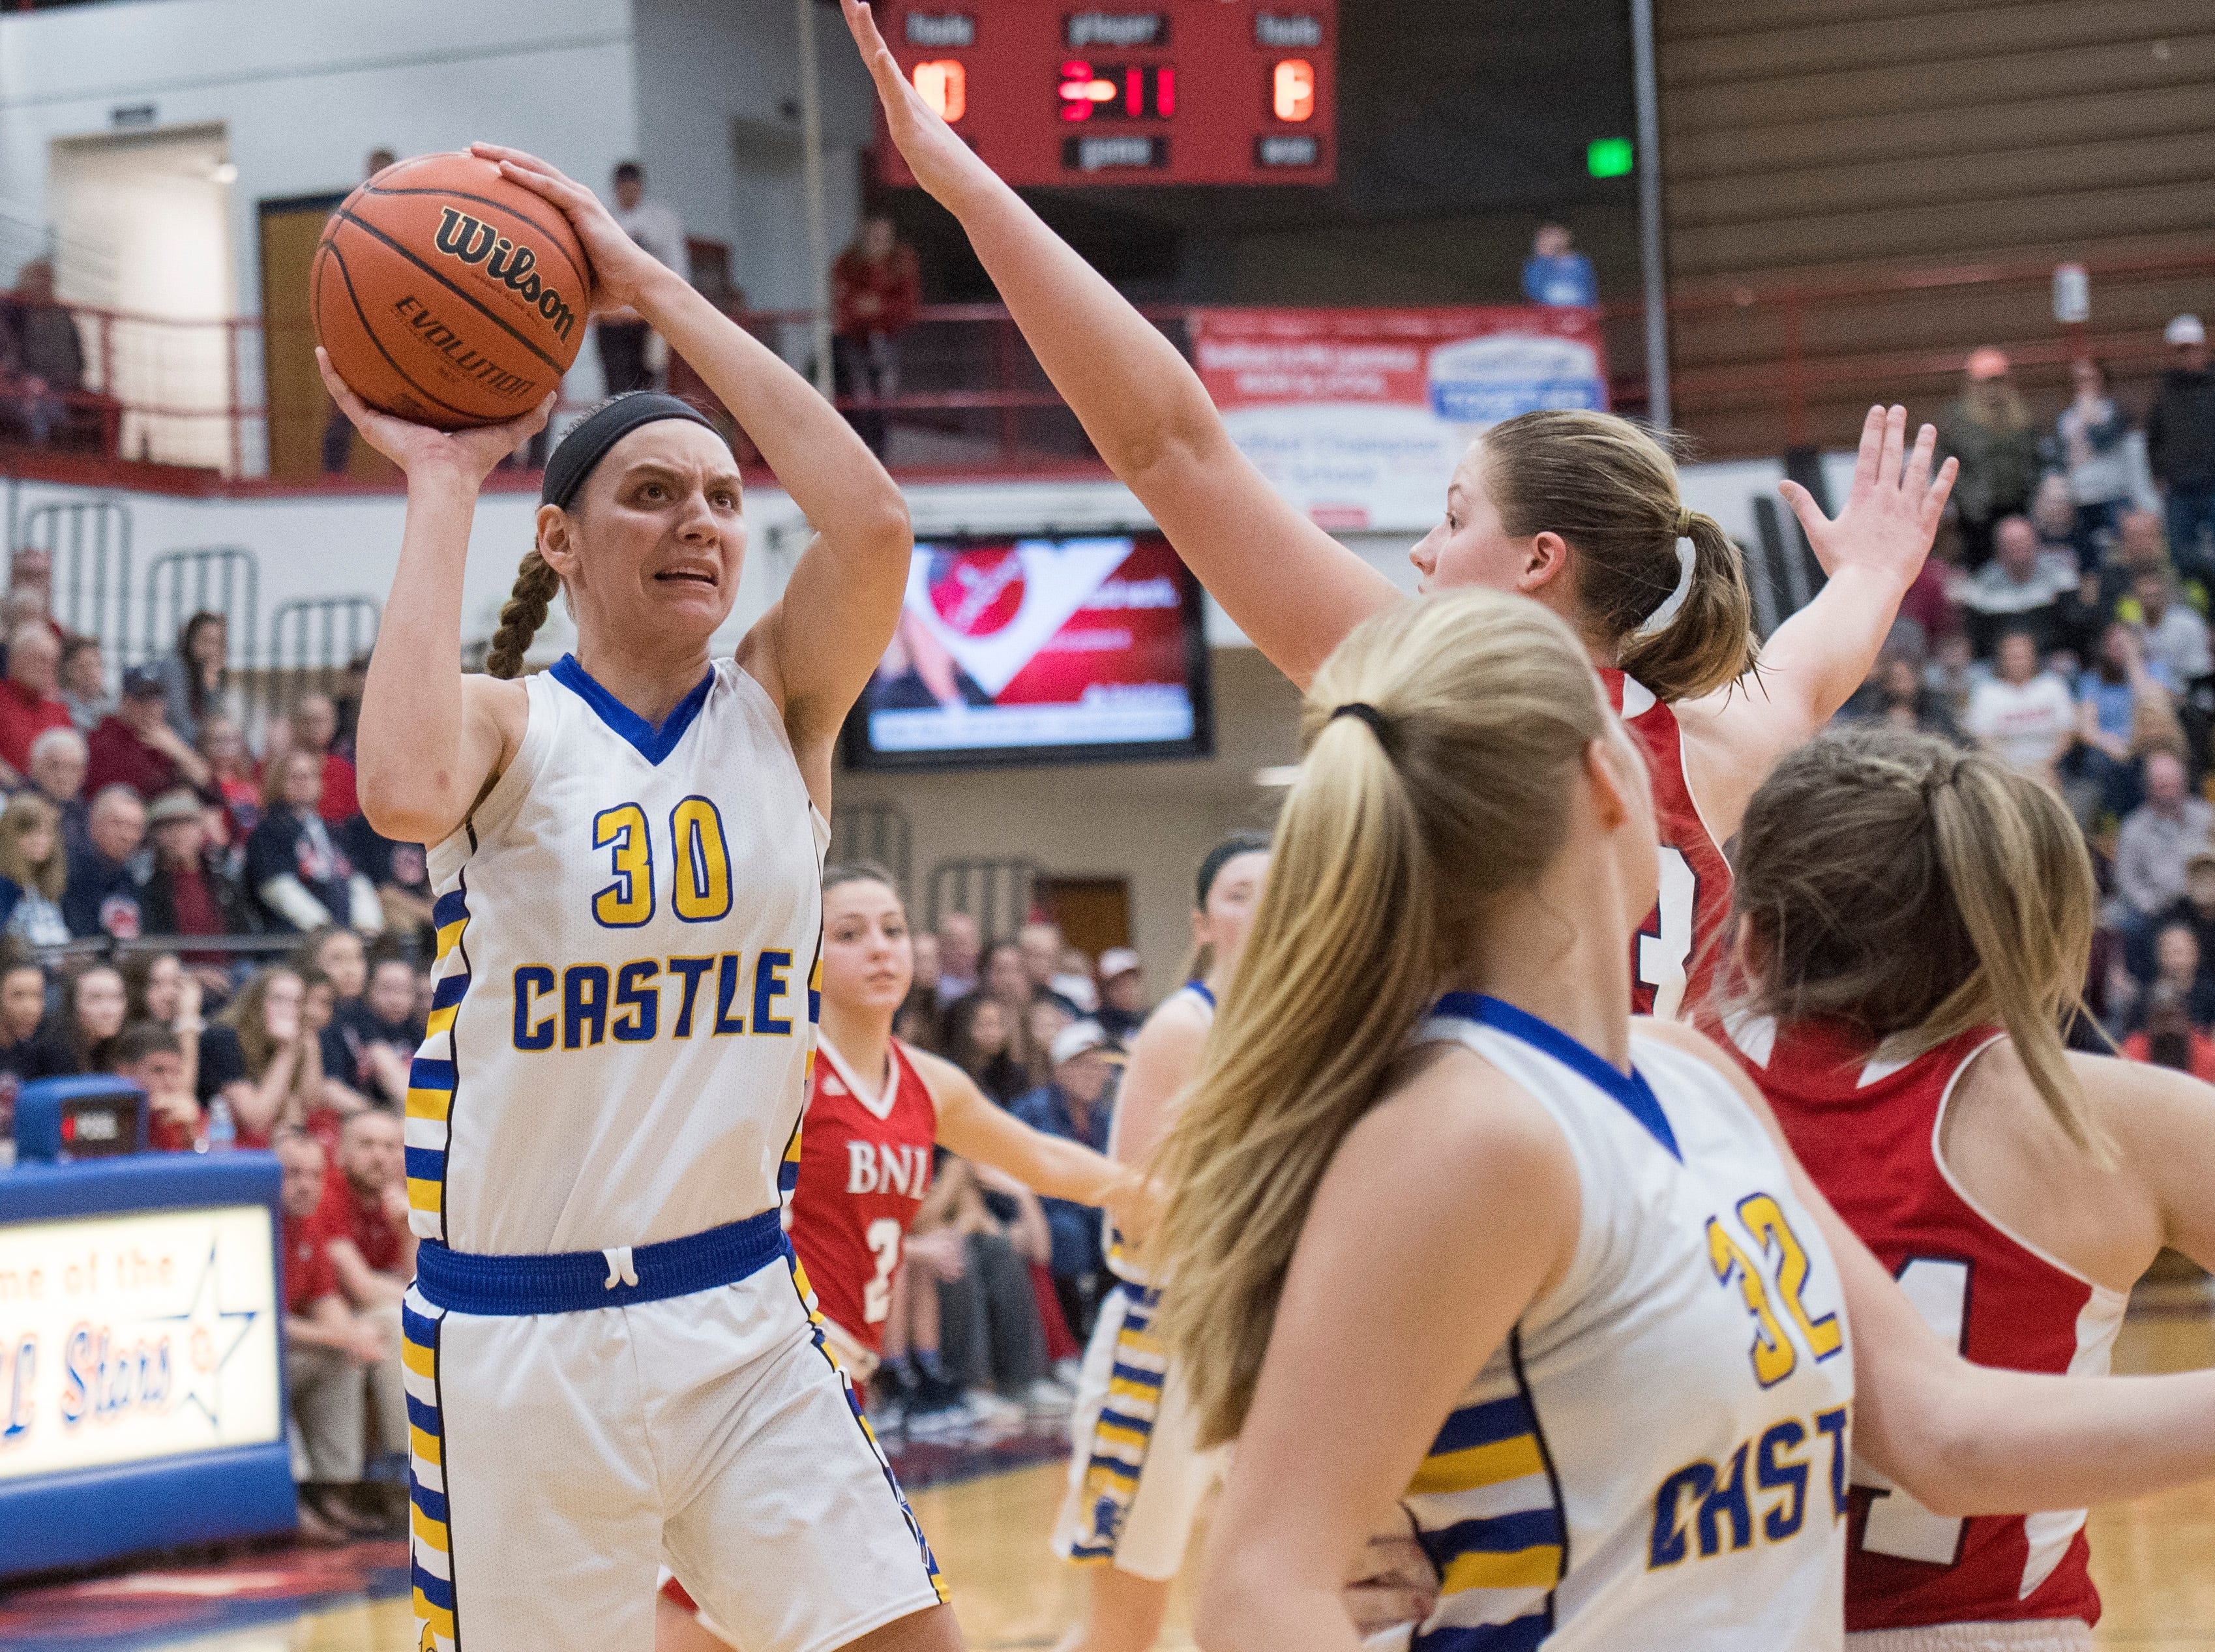 Castle's Jessica Nunge (30) takes a shot IHSAA Girls Basketball Class 4A Regional Championship game against the Bedford North Lawrence Lady Stars at the Stars Field House in Bedford, Ind. Saturday, Feb. 9, 2019.